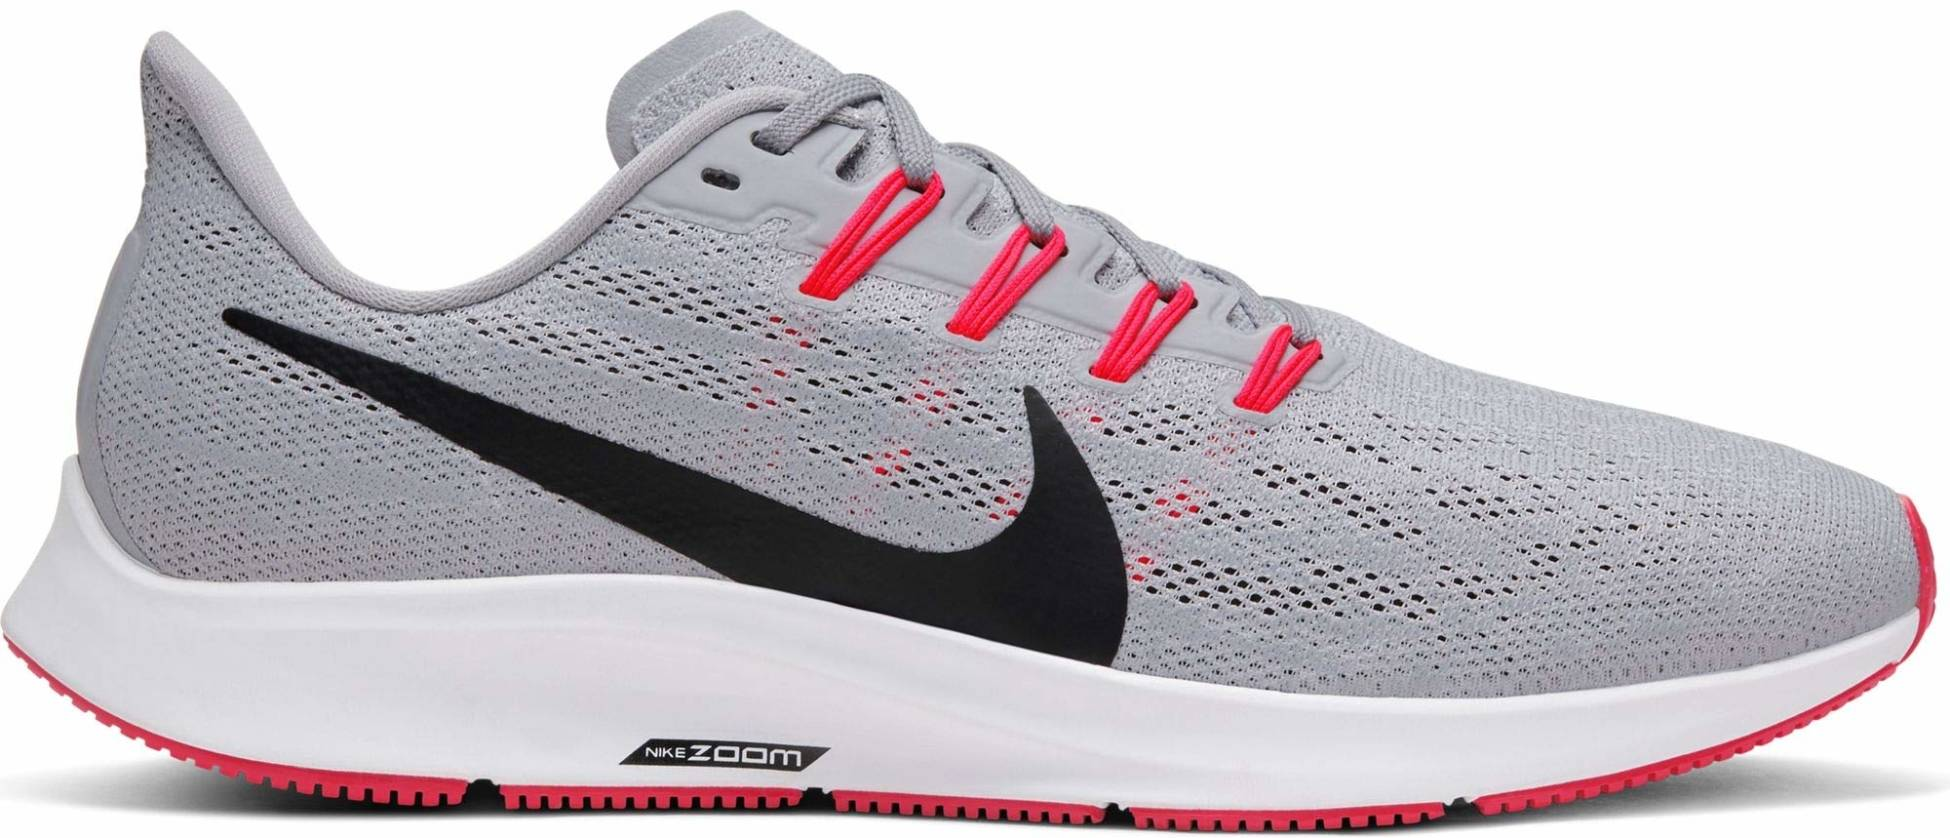 Save 43% on Nike Running Shoes (246